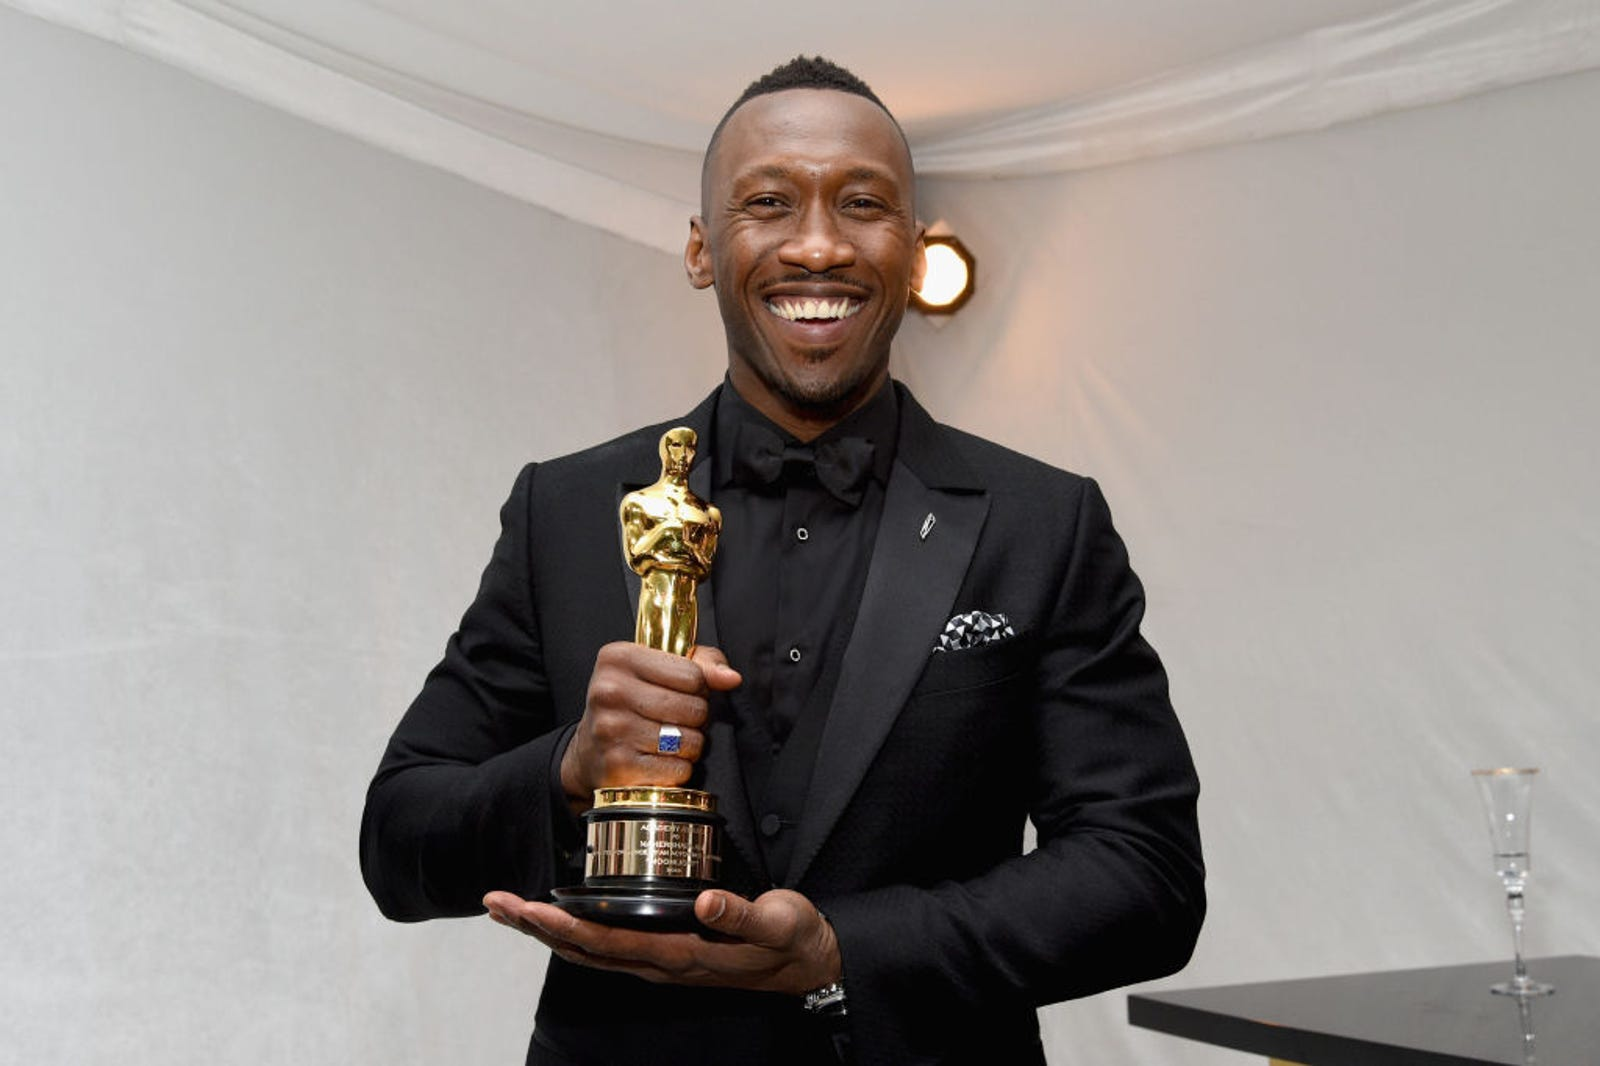 Mahershala Ali (Kevork Djansezian/Getty Images)